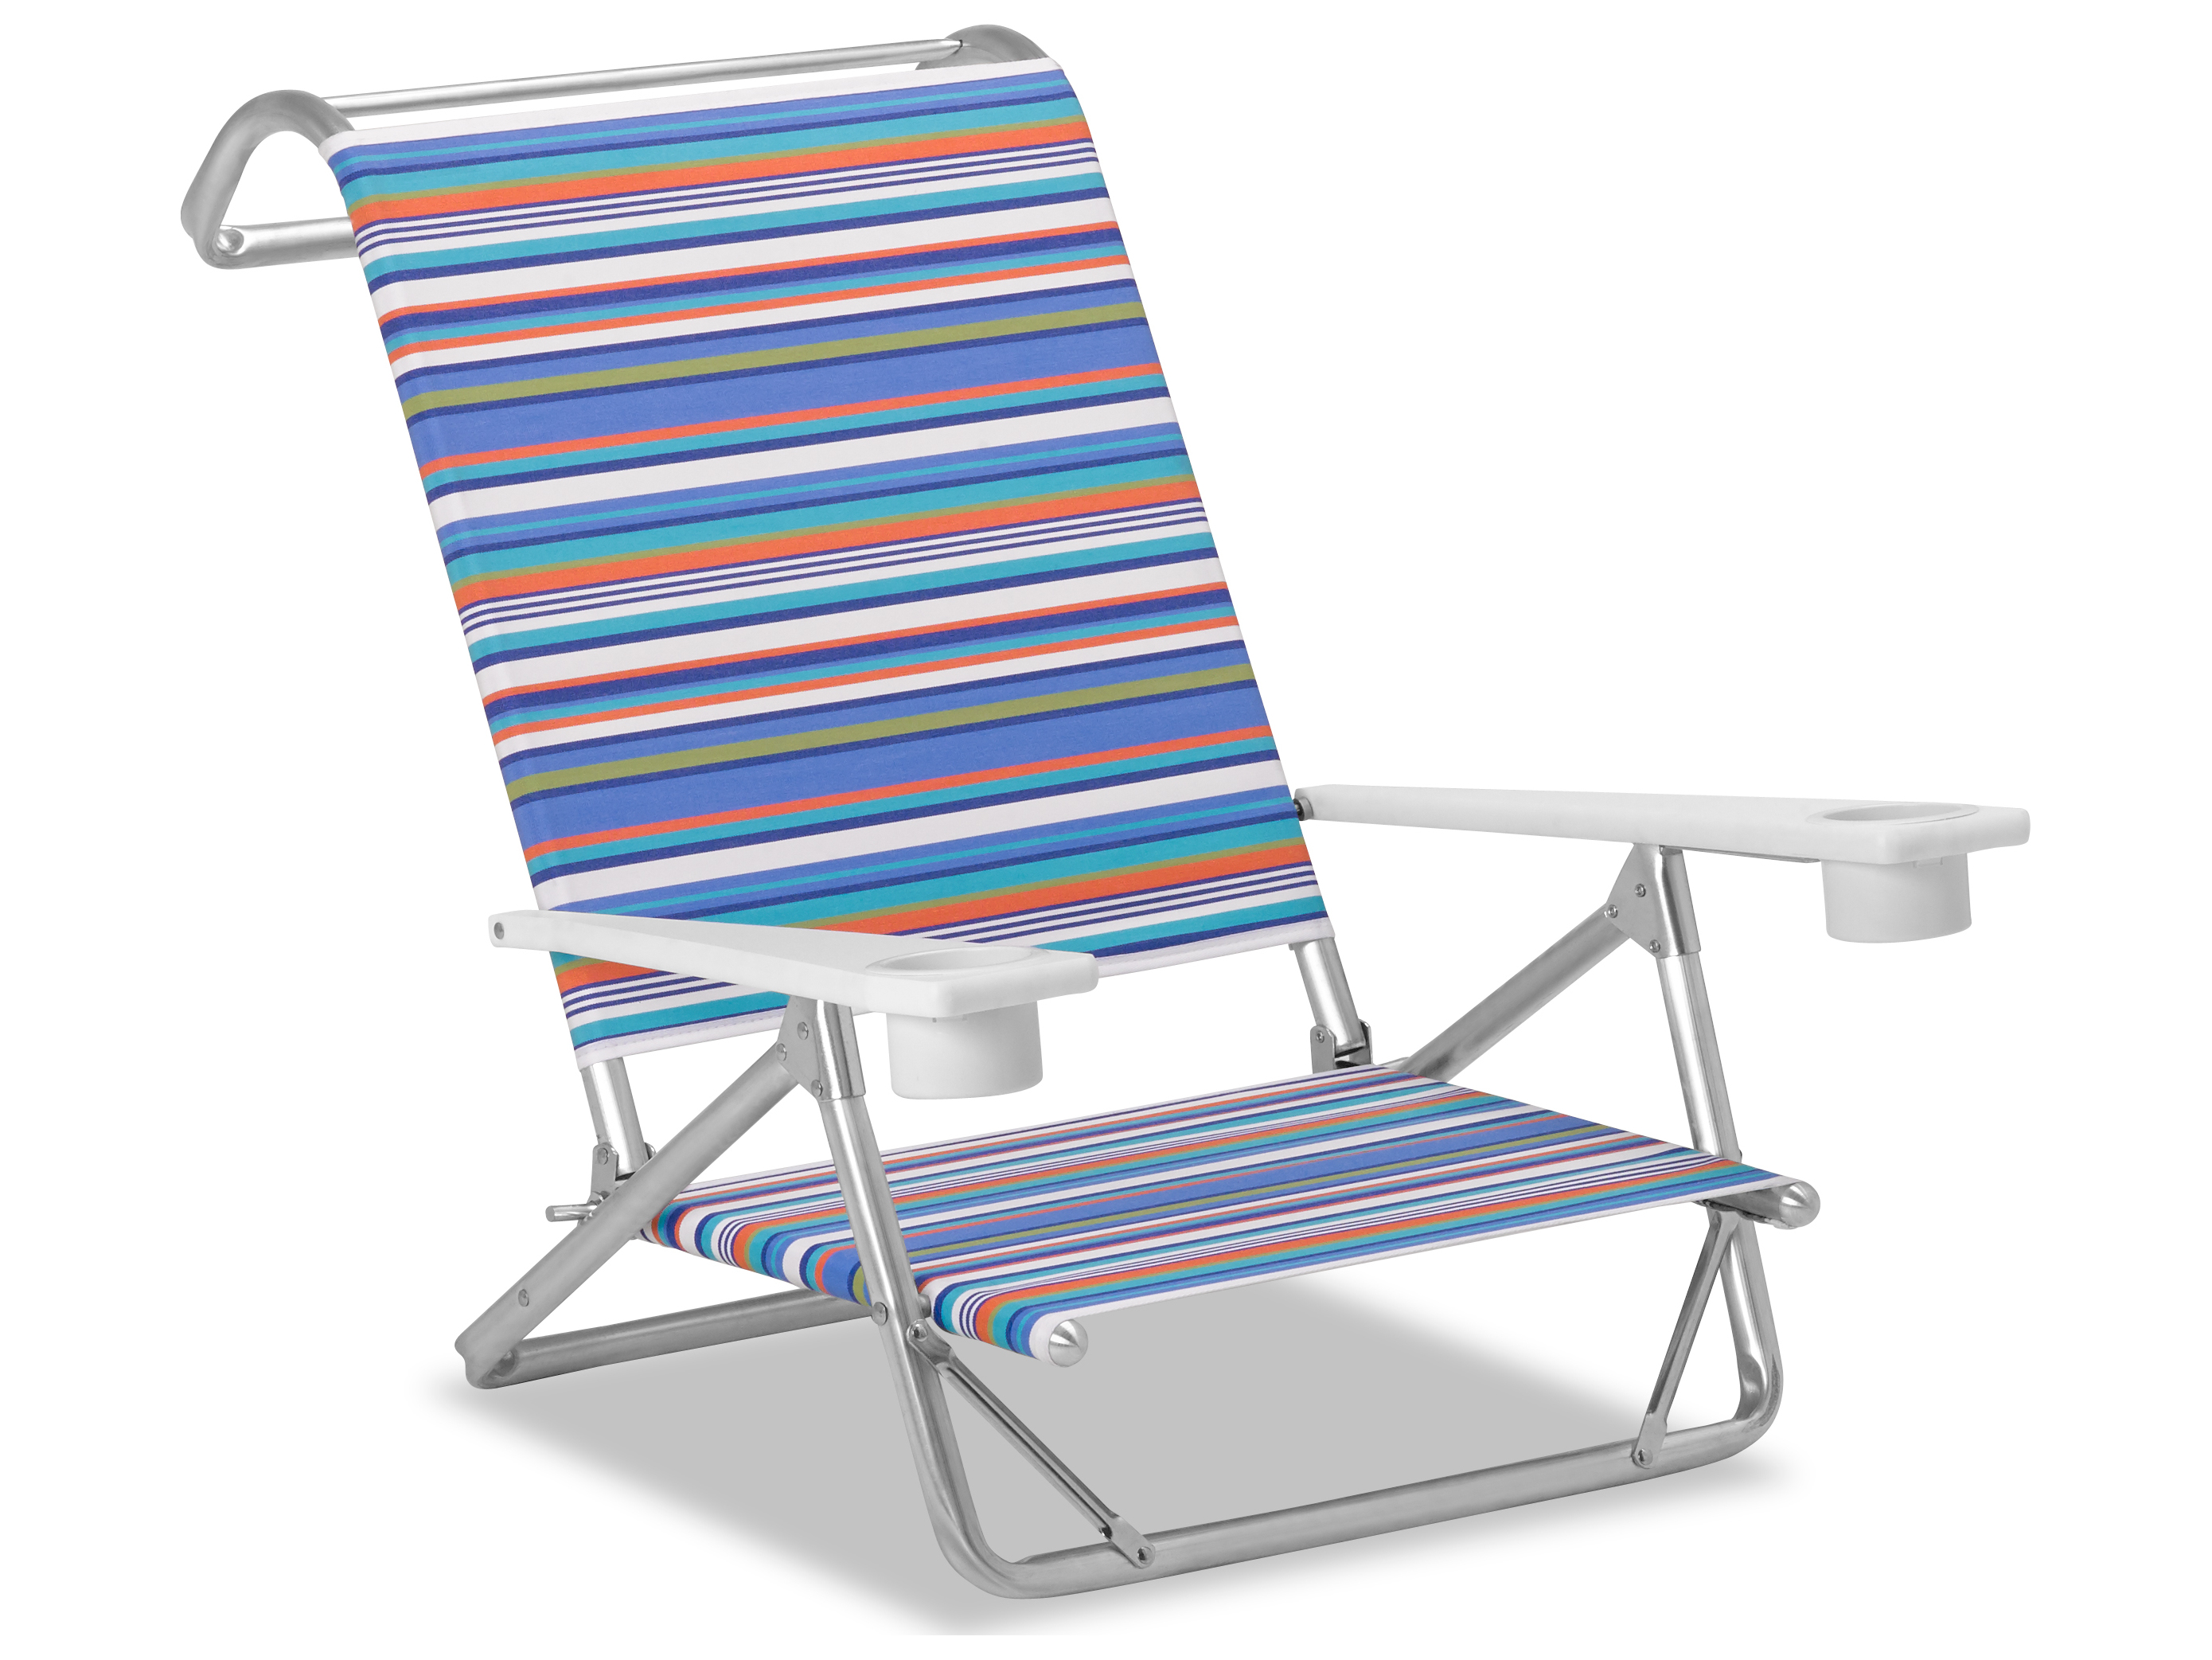 Telescope Beach Chair Telescope Casual Beach And Aluminum Original Mini Sun Chaise With Mgp Arms With Cup Holders